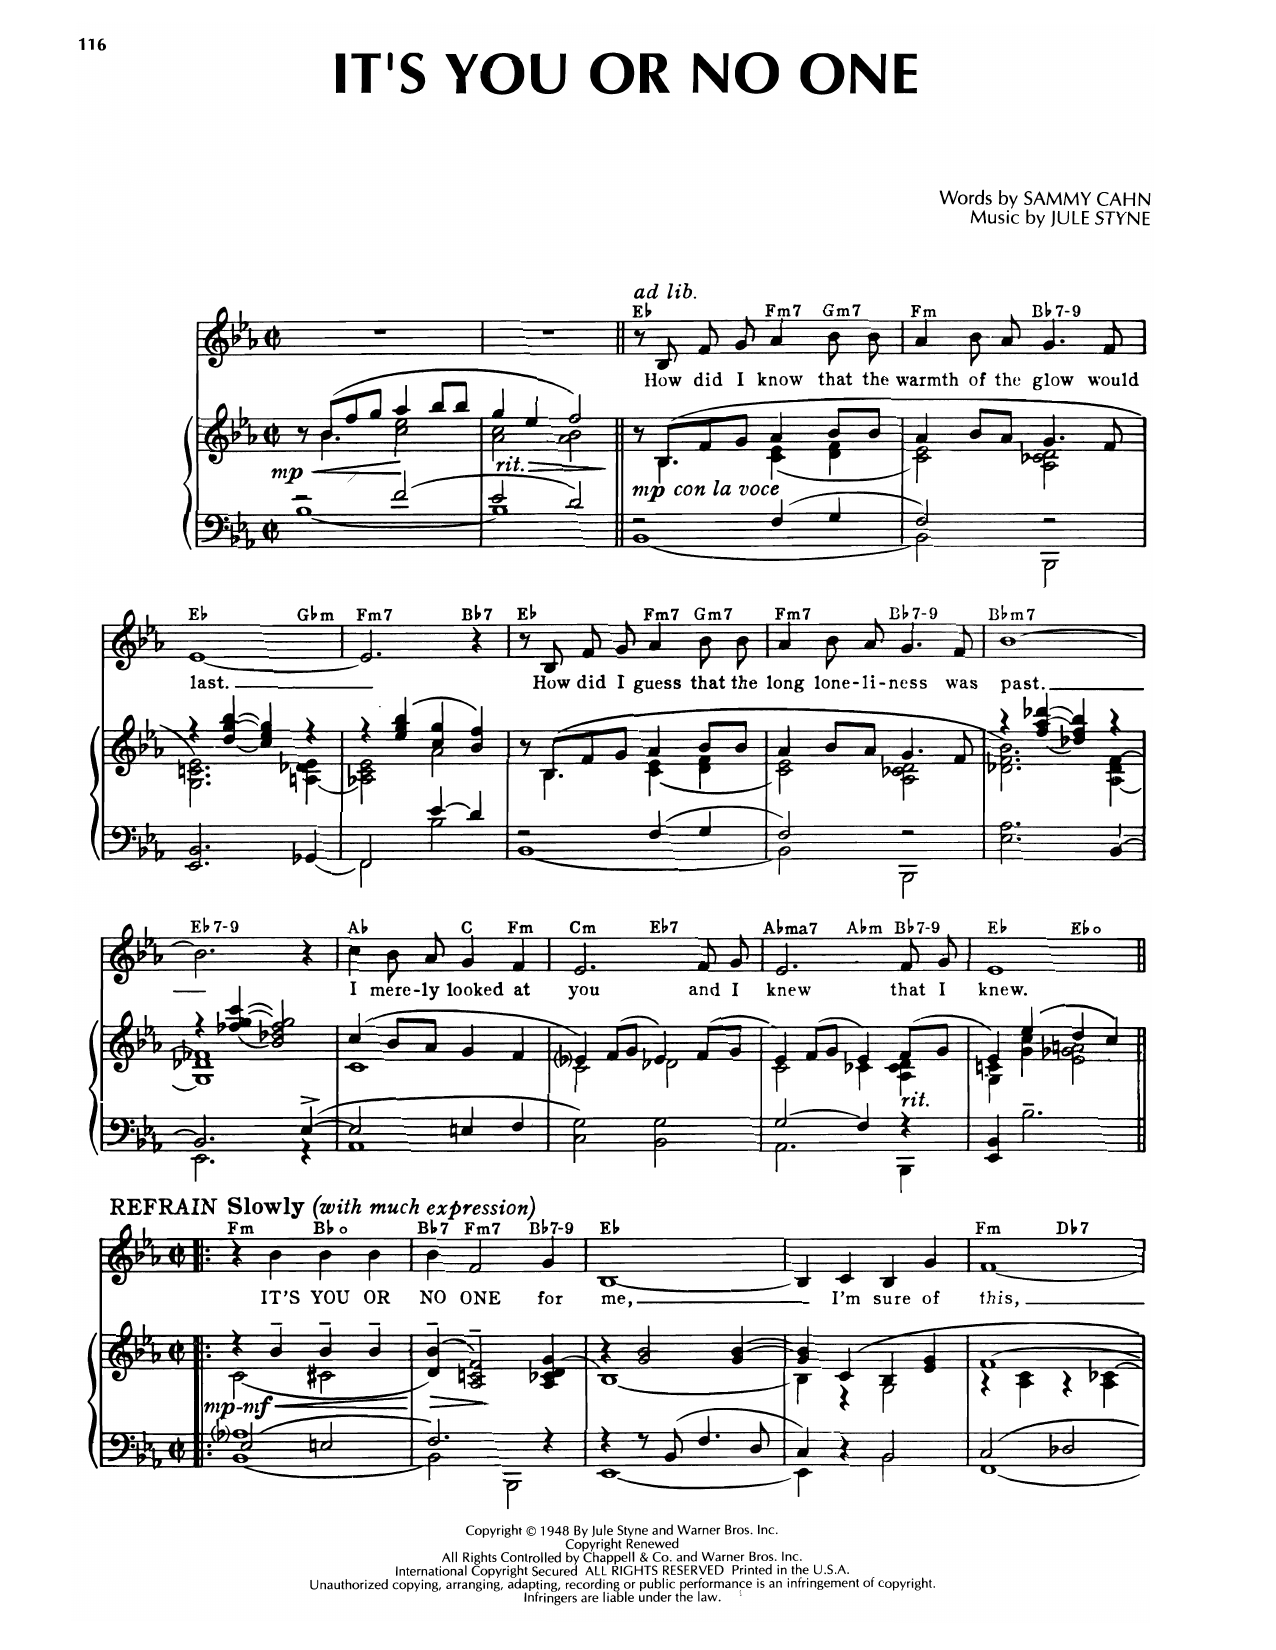 Sammy Cahn & Jule Styne It's You Or No One (from Romance On The High Seas) sheet music notes printable PDF score